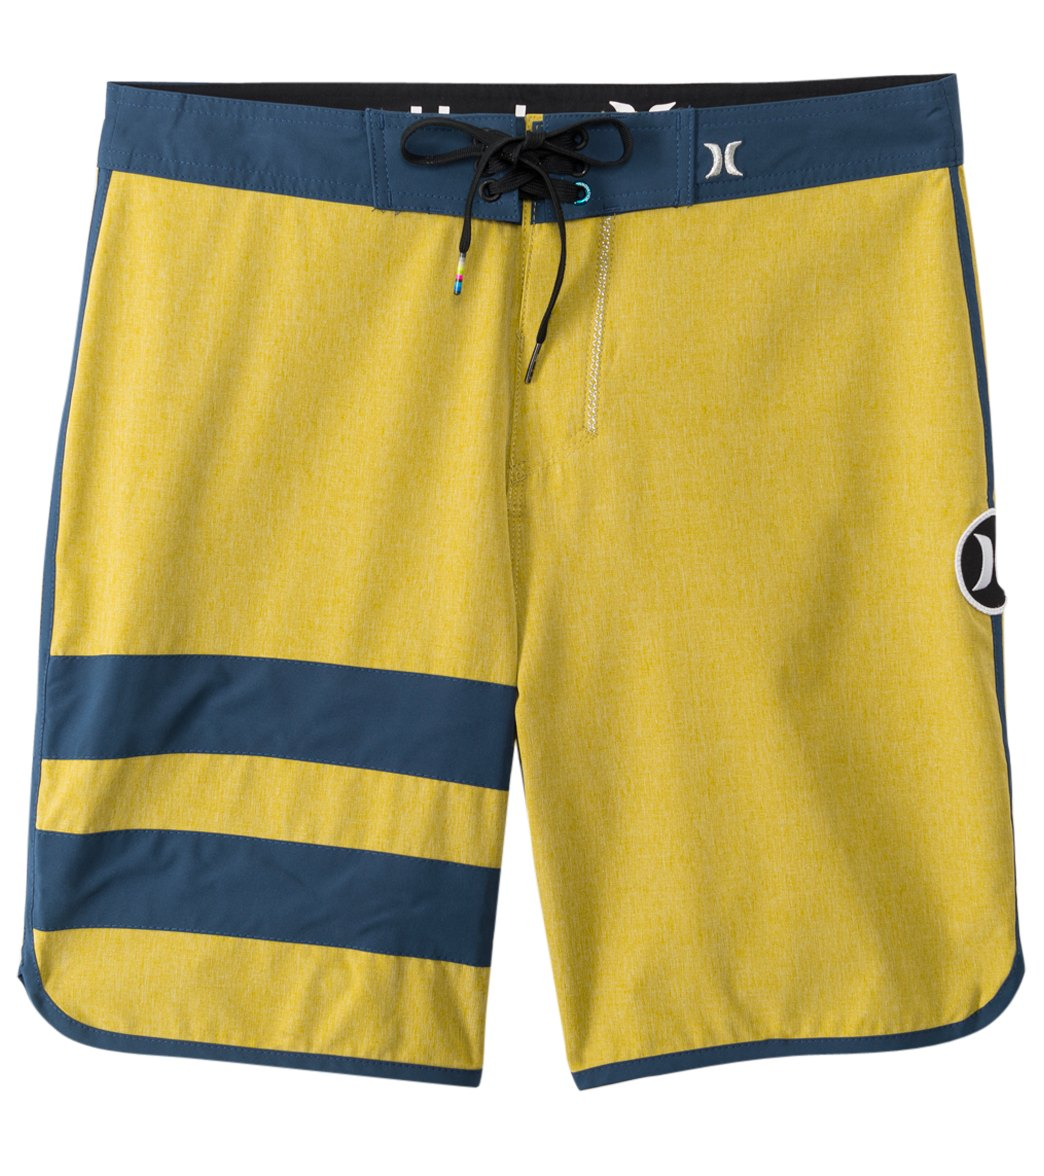 ed49c3cc3e Hurley Men's Phantom Block Party Heather Boardshort at SwimOutlet ...